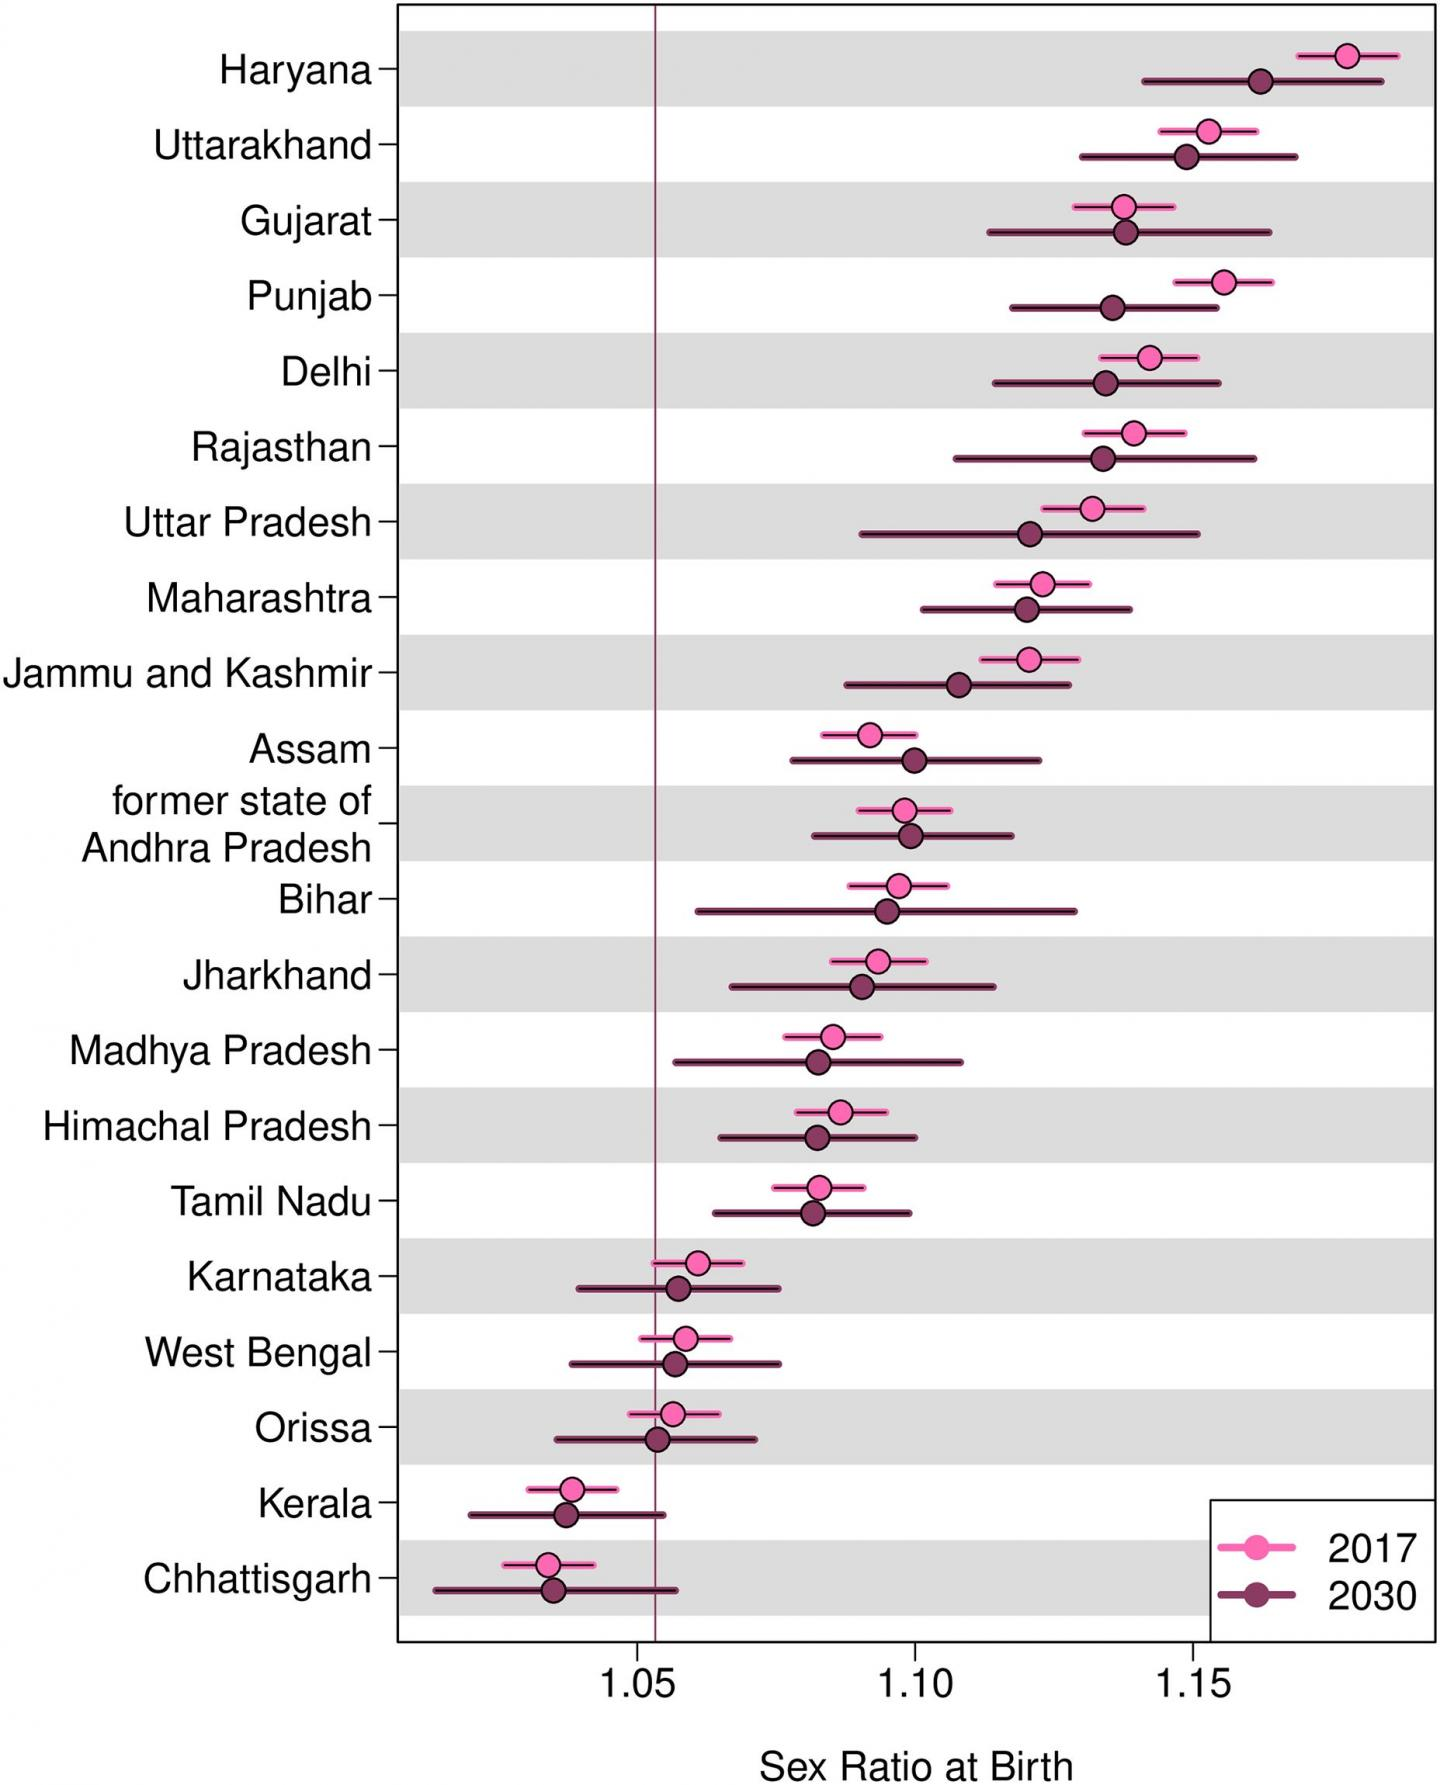 Researchers predict deficits in female birth numbers in India over coming decades